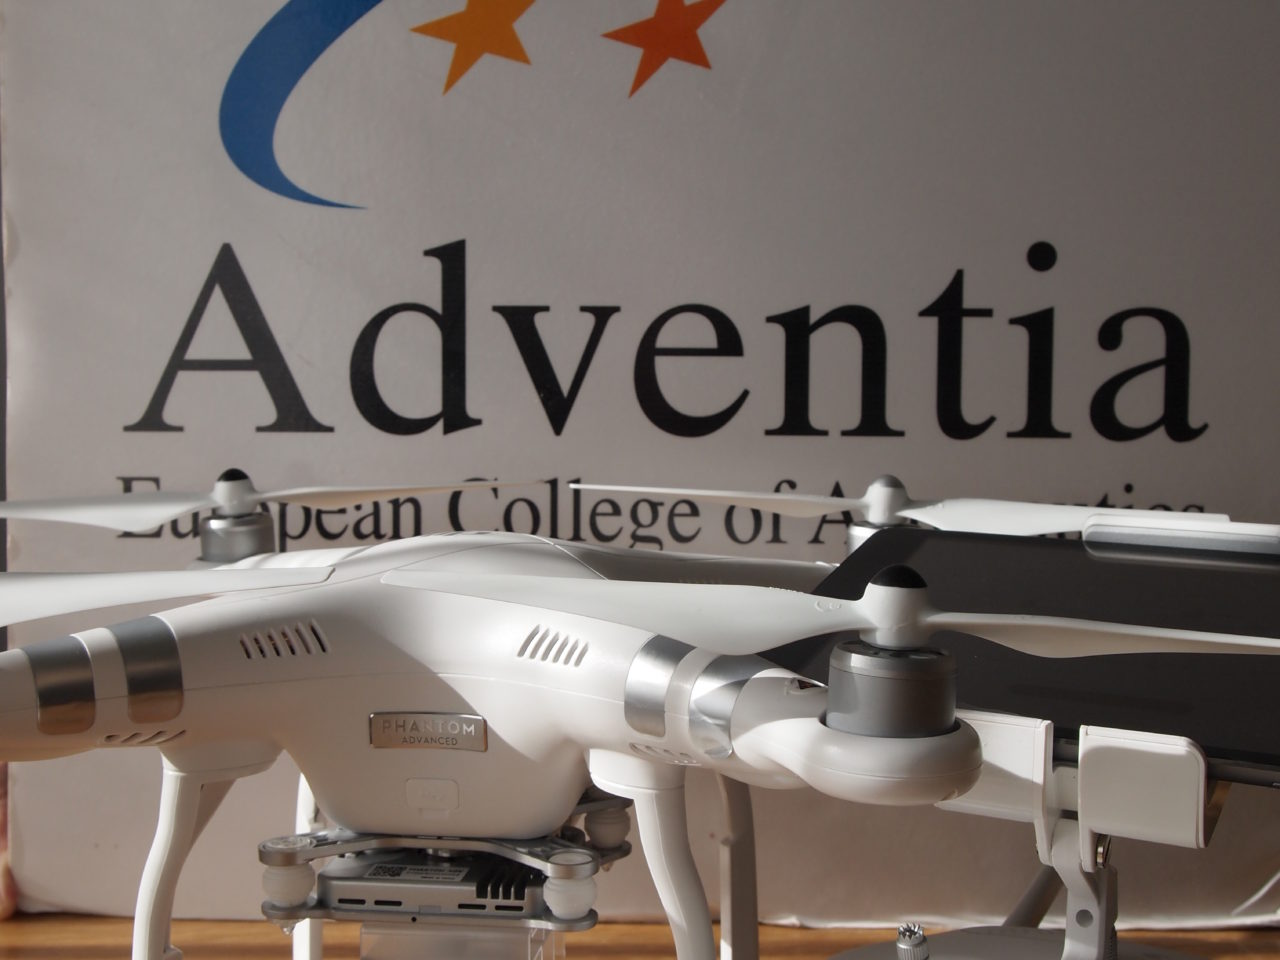 Phanton Adventia RPAS Drones